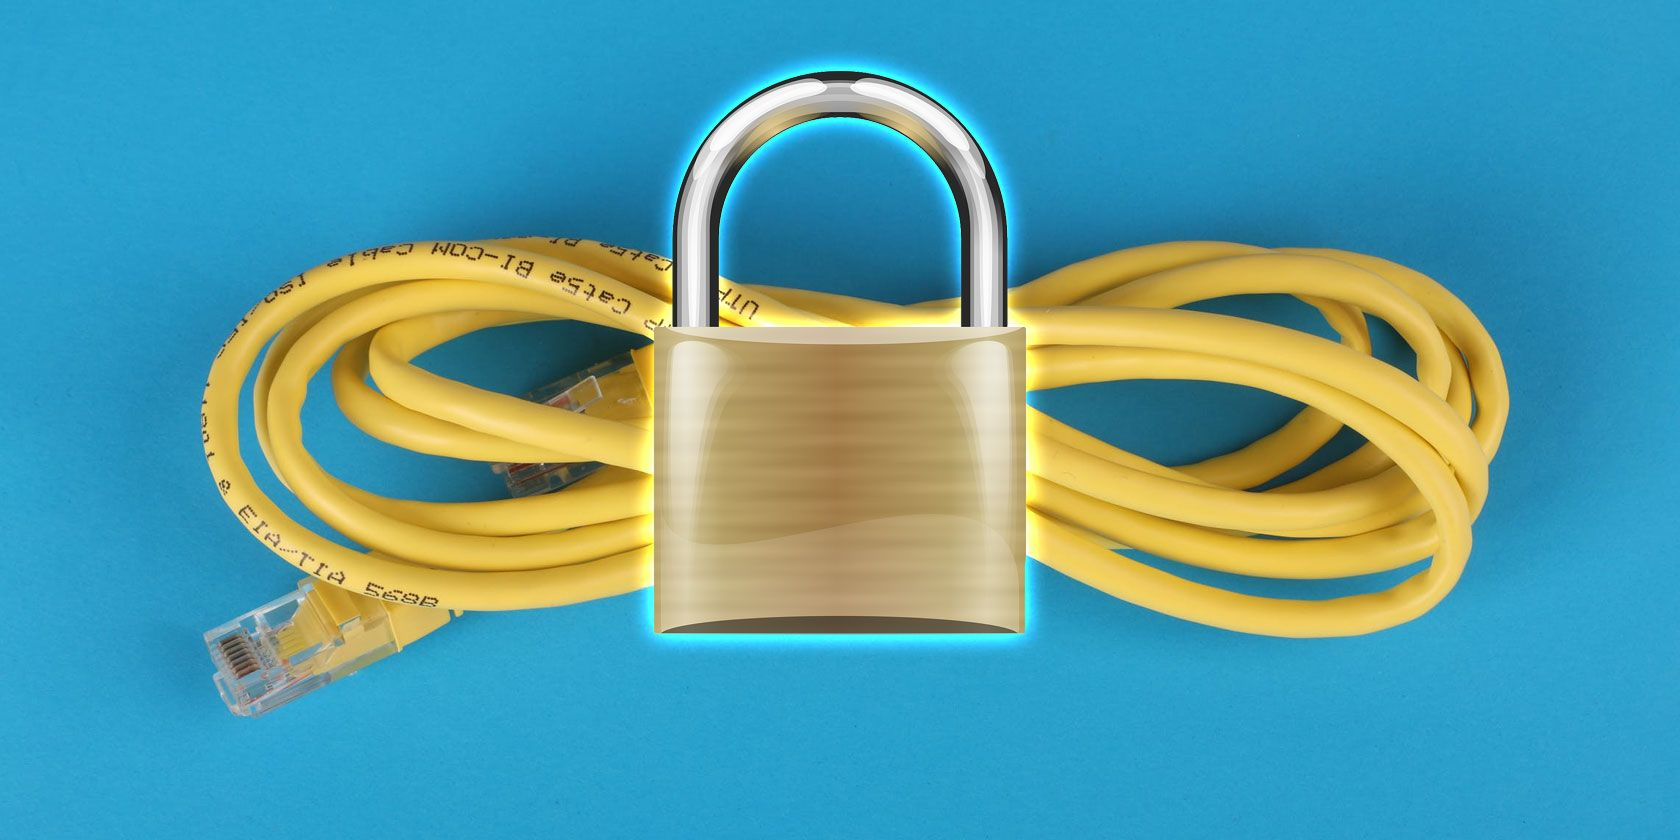 Is Your Network Secure? How to Analyse Network Traffic With Wireshark